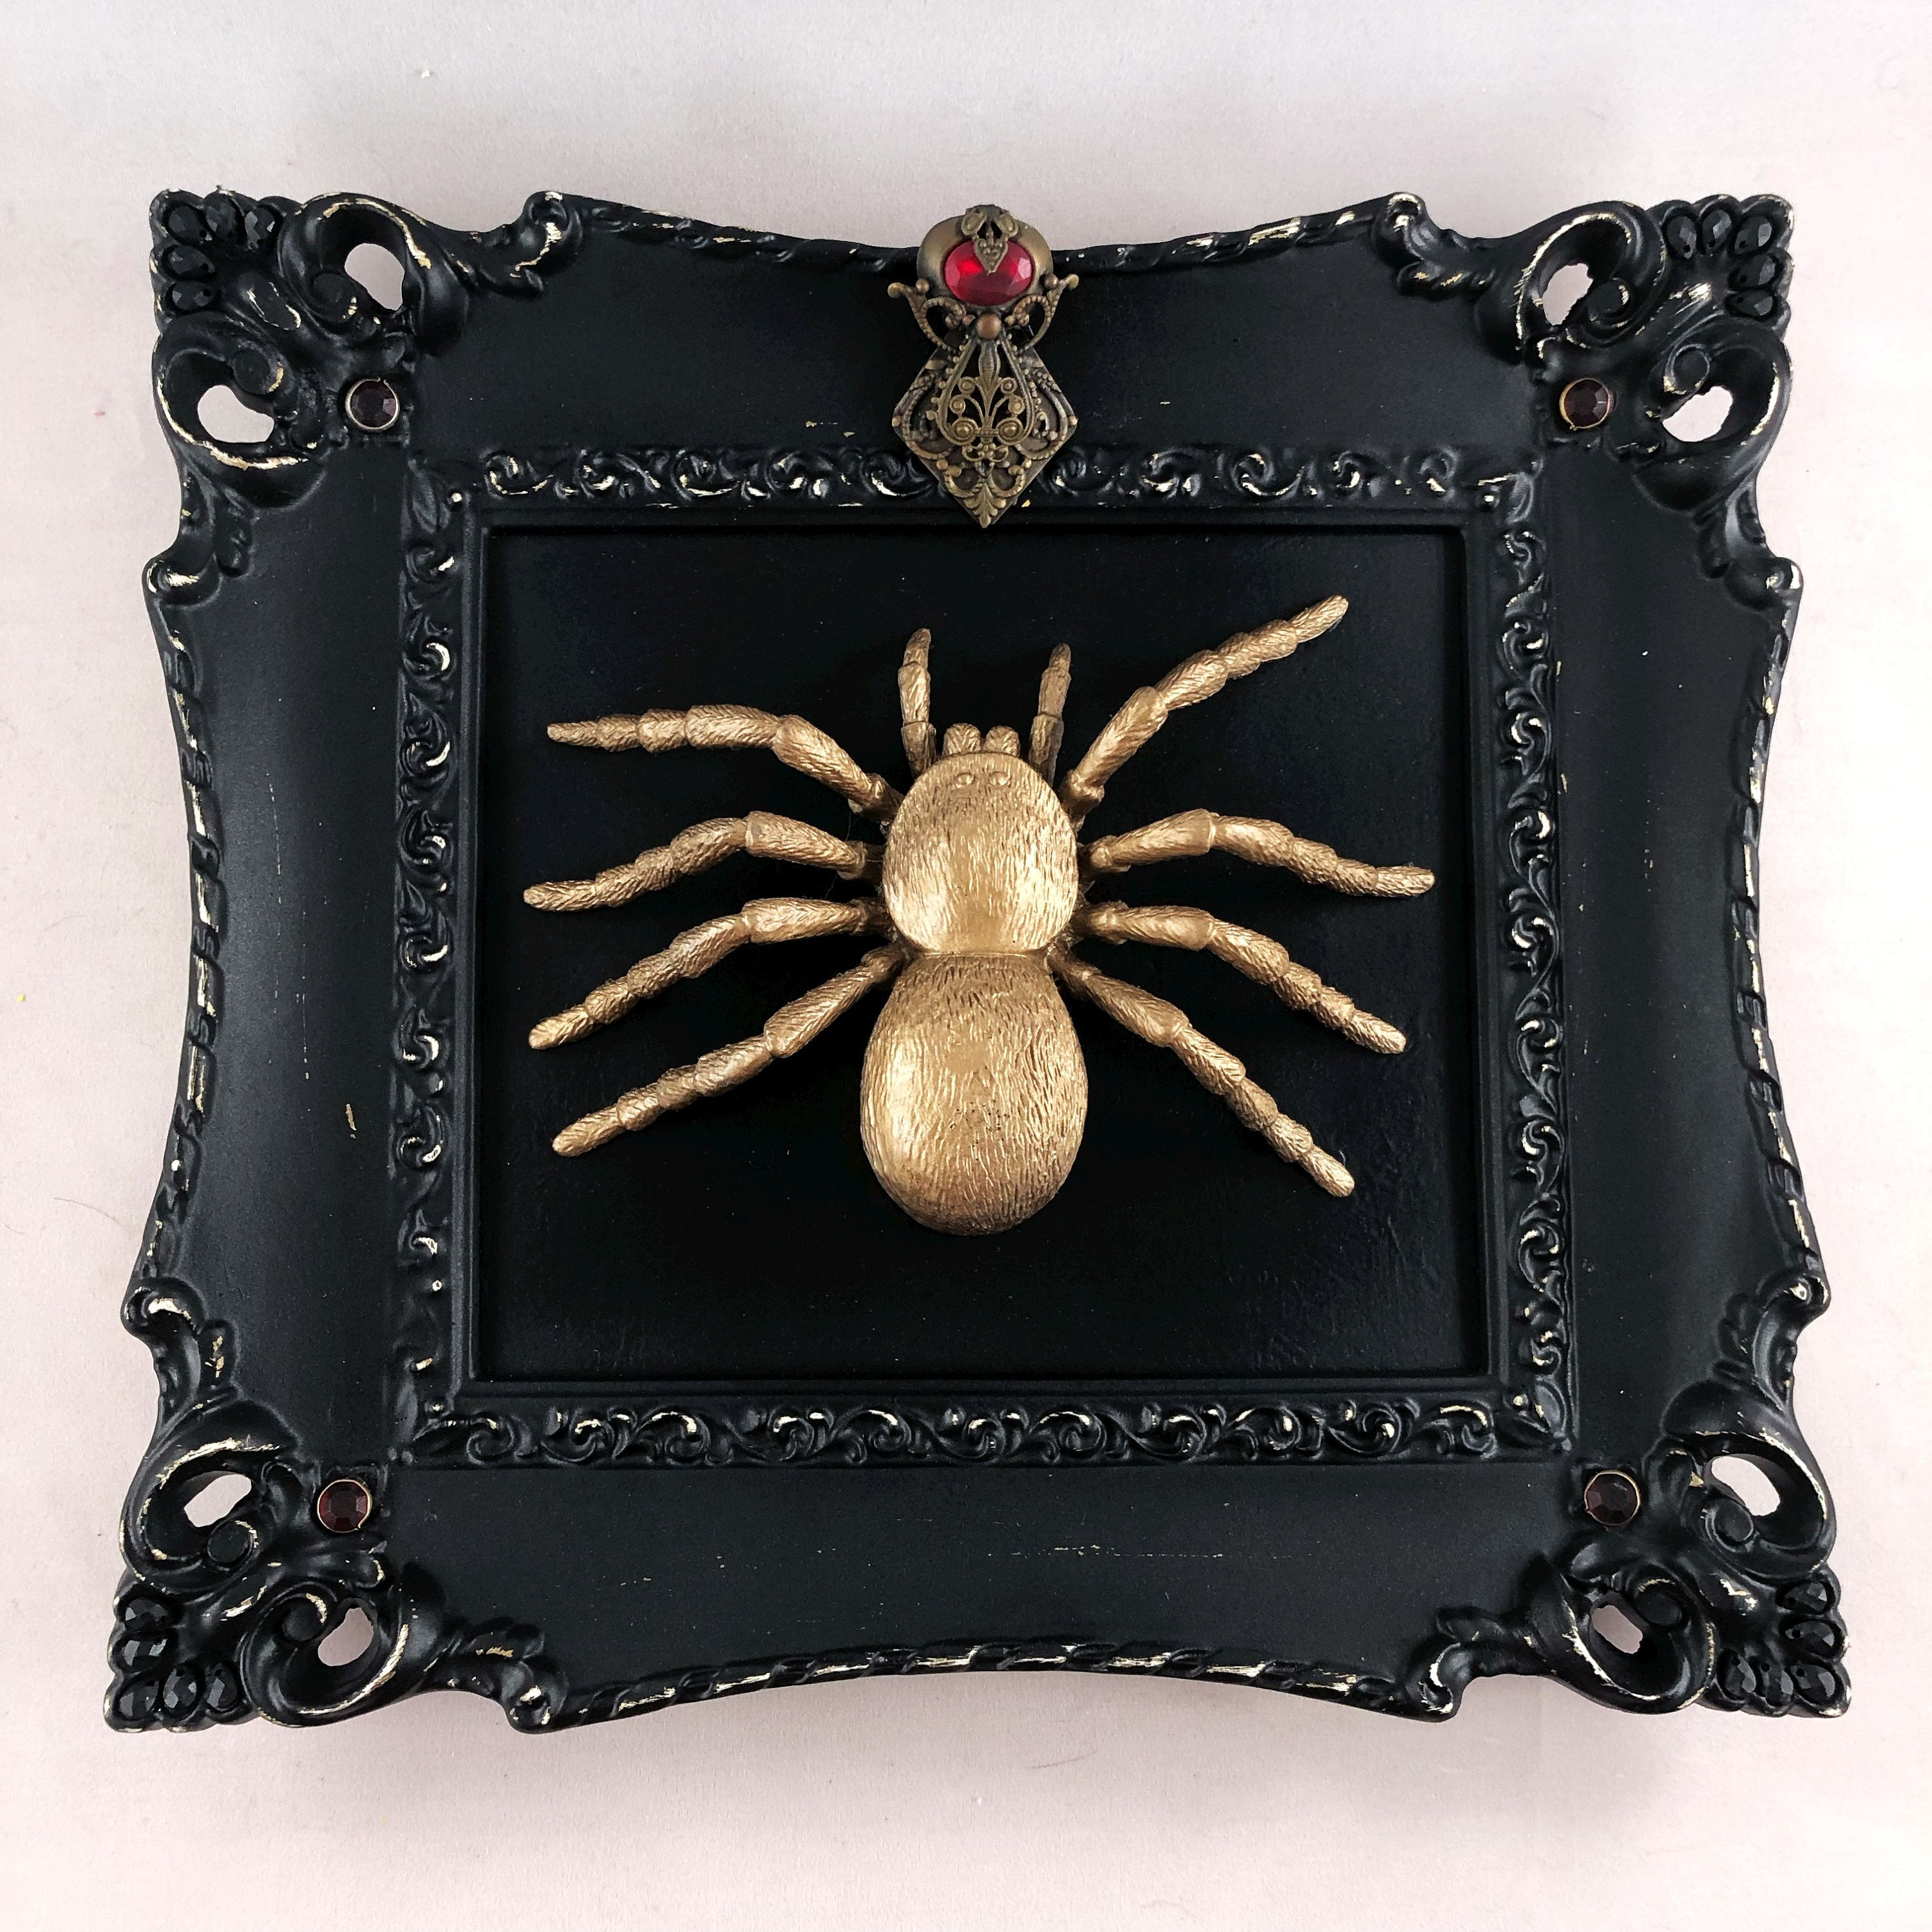 Faux taxidermy spider ornate jeweled frame gothic decor | Etsy